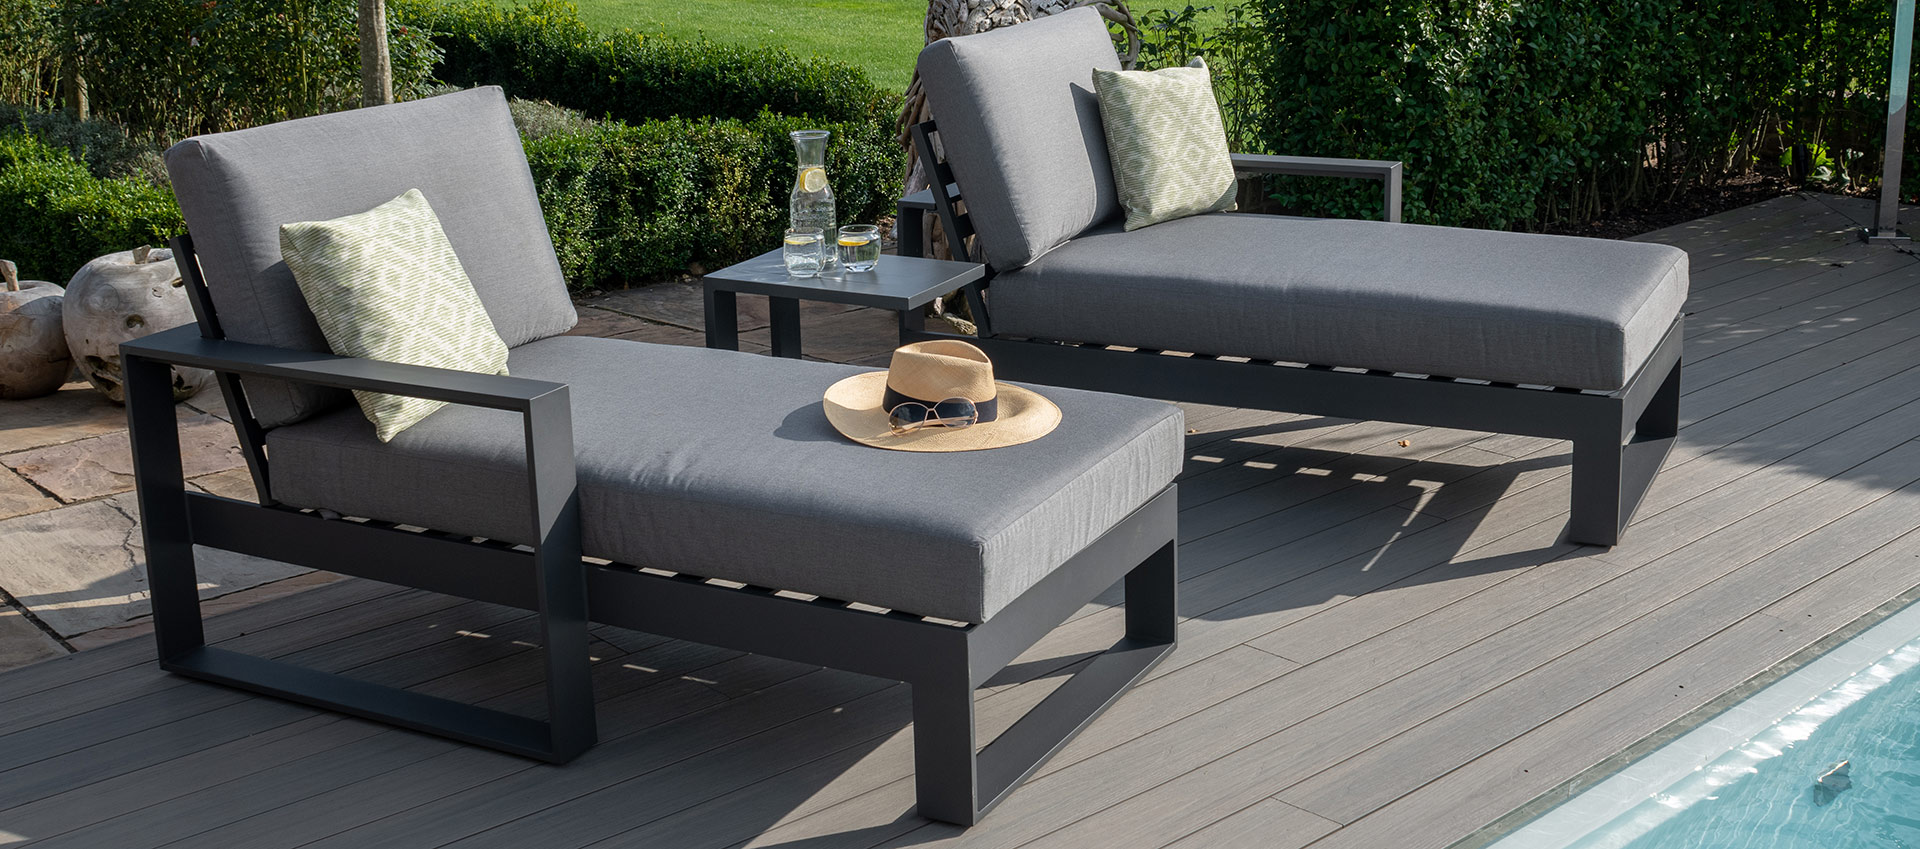 Maze - Amalfi Double Sunlounger with Side Table - Grey